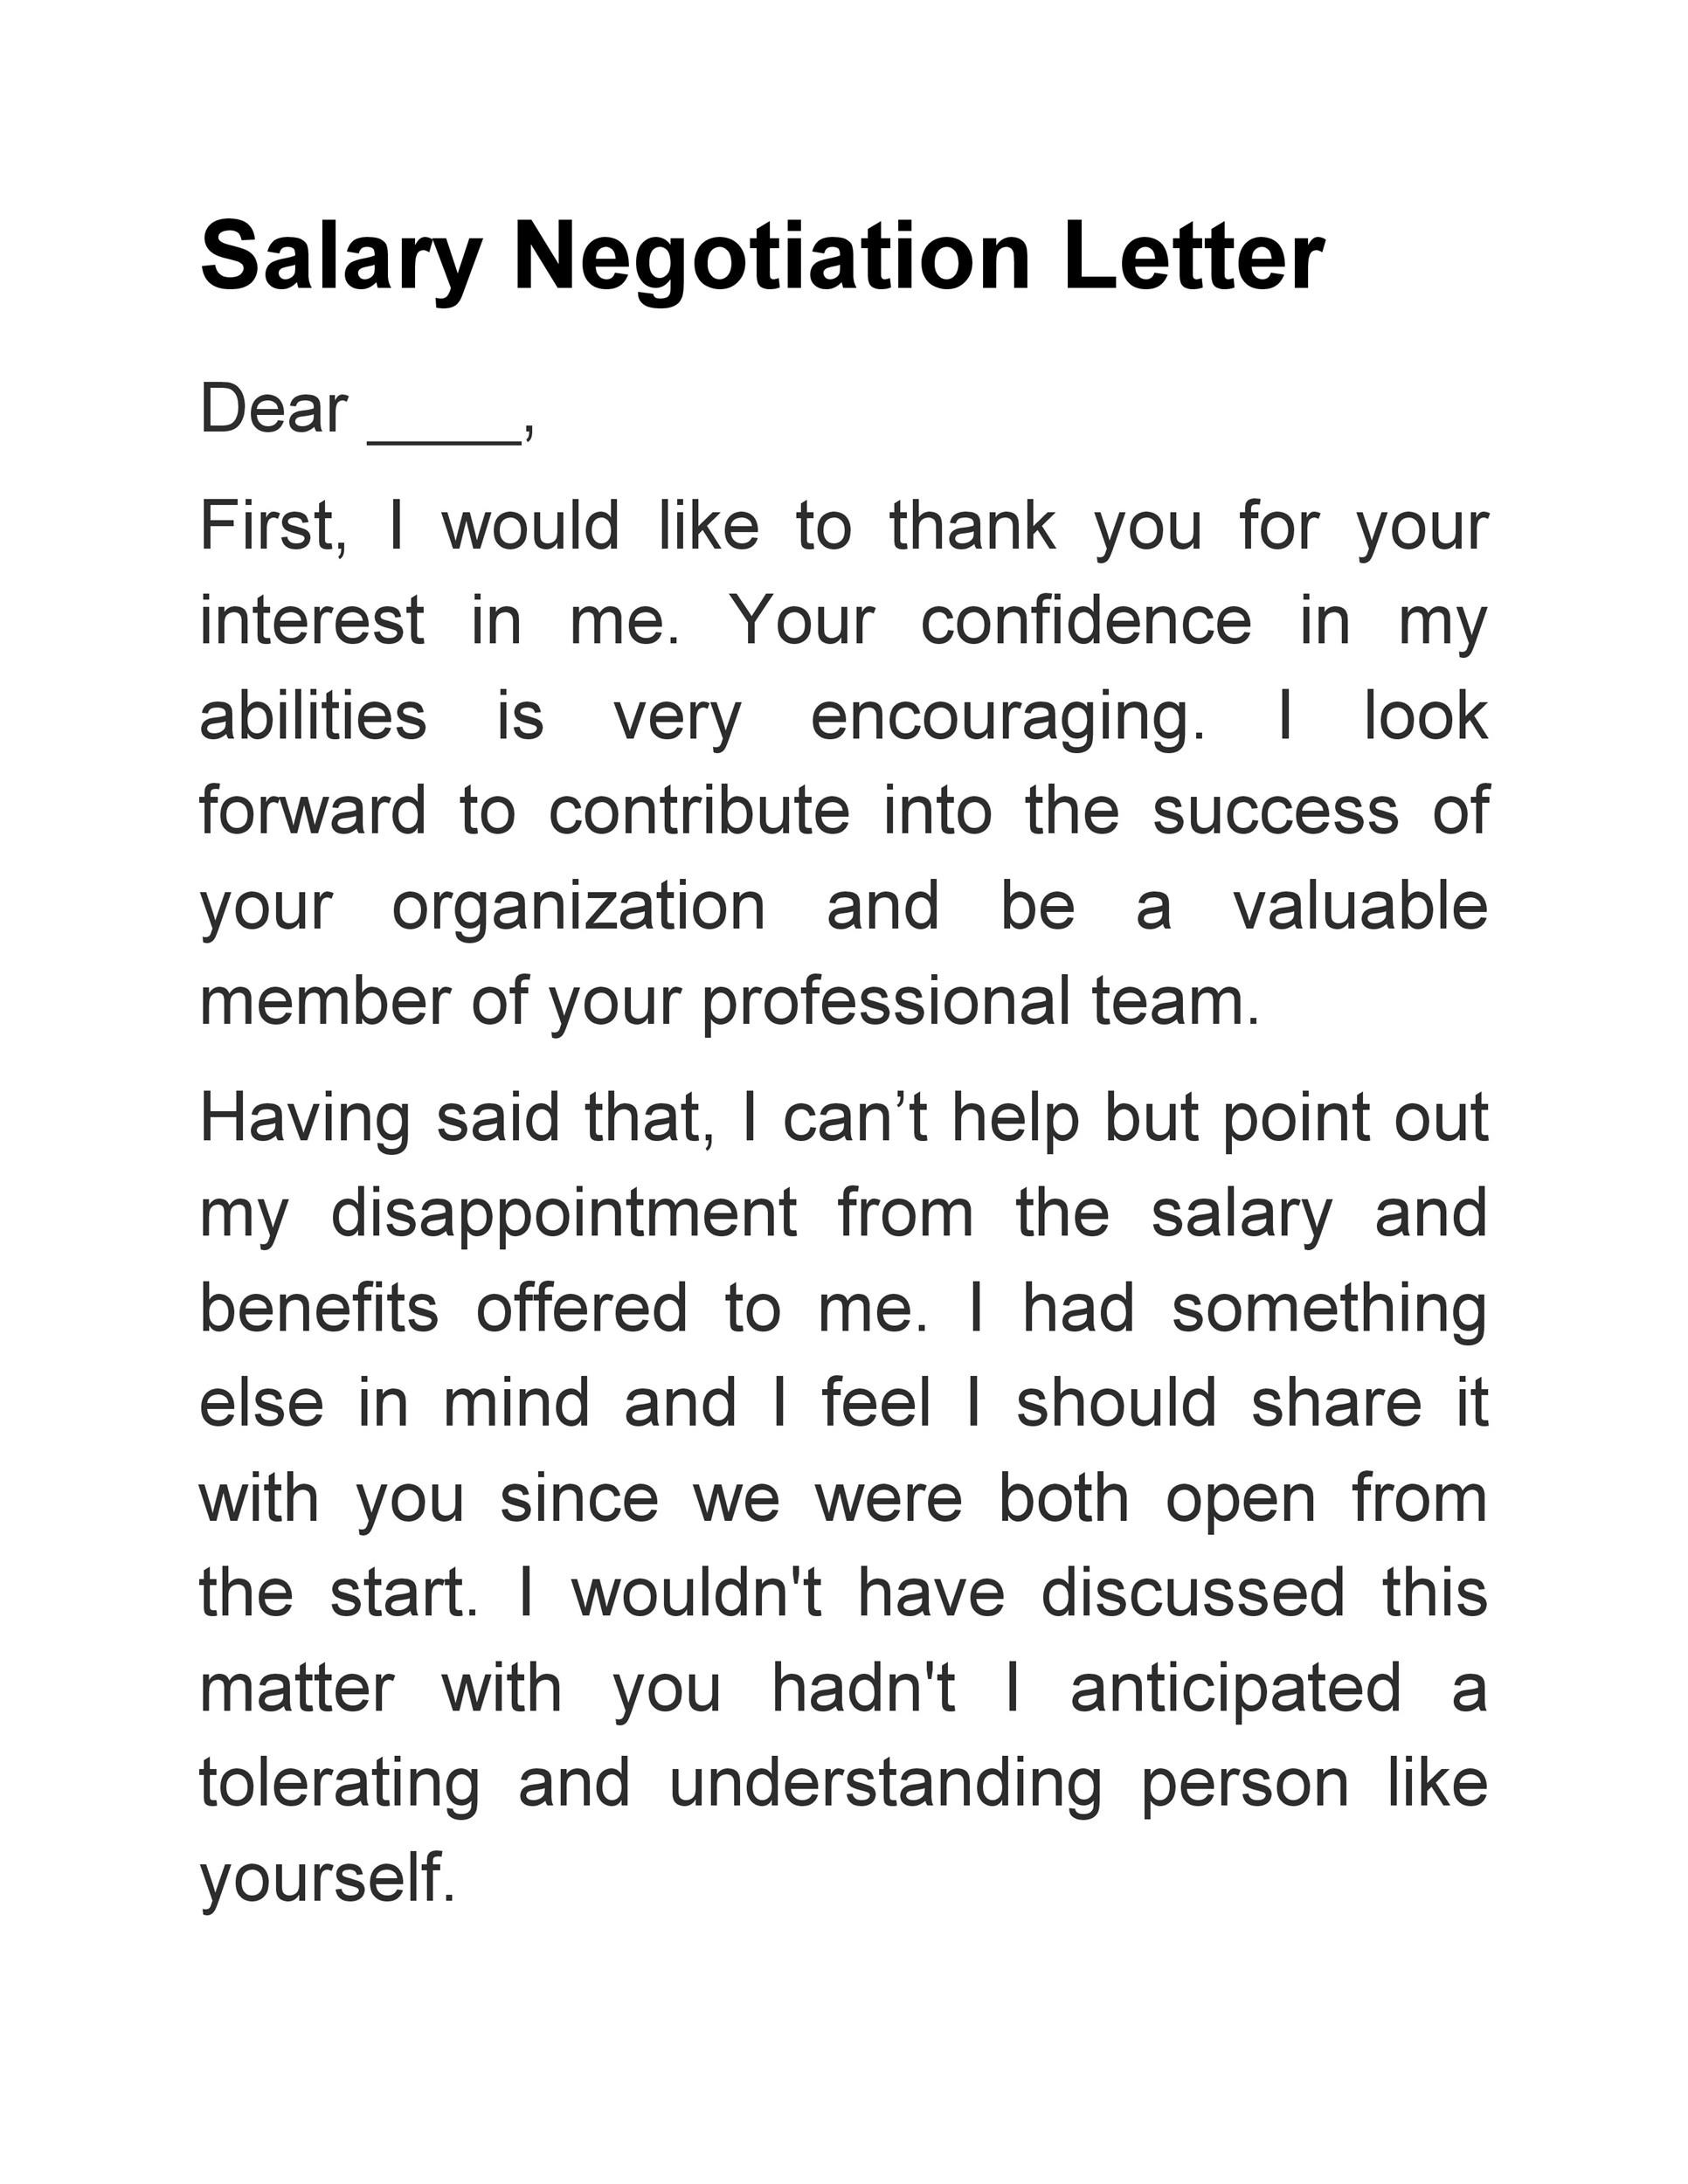 Free salary negotiation letter 19